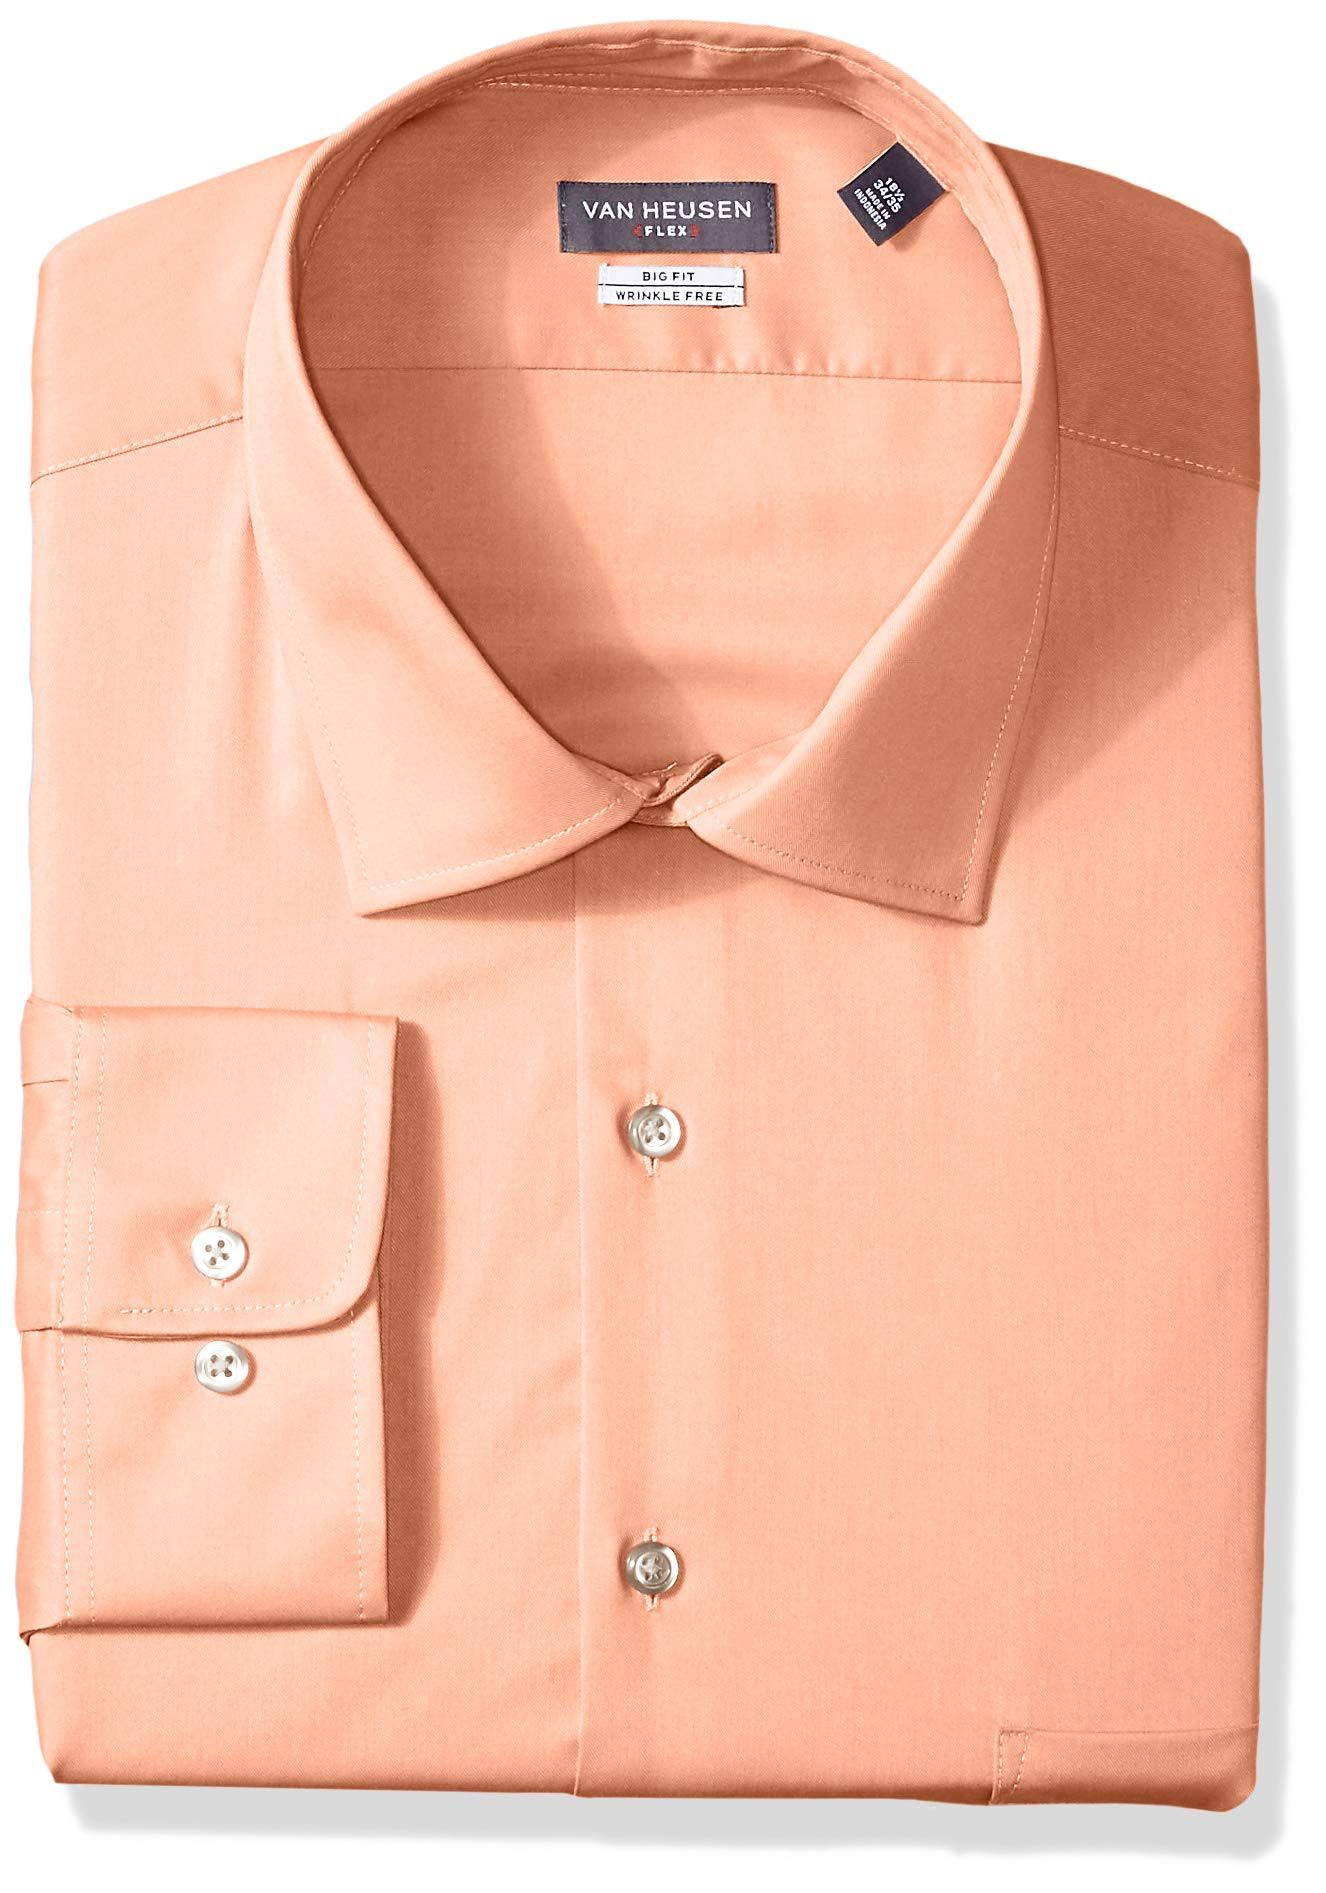 Heusen Flex Fit Solid Regular Herren Businesshemd Van 8qypFSfq